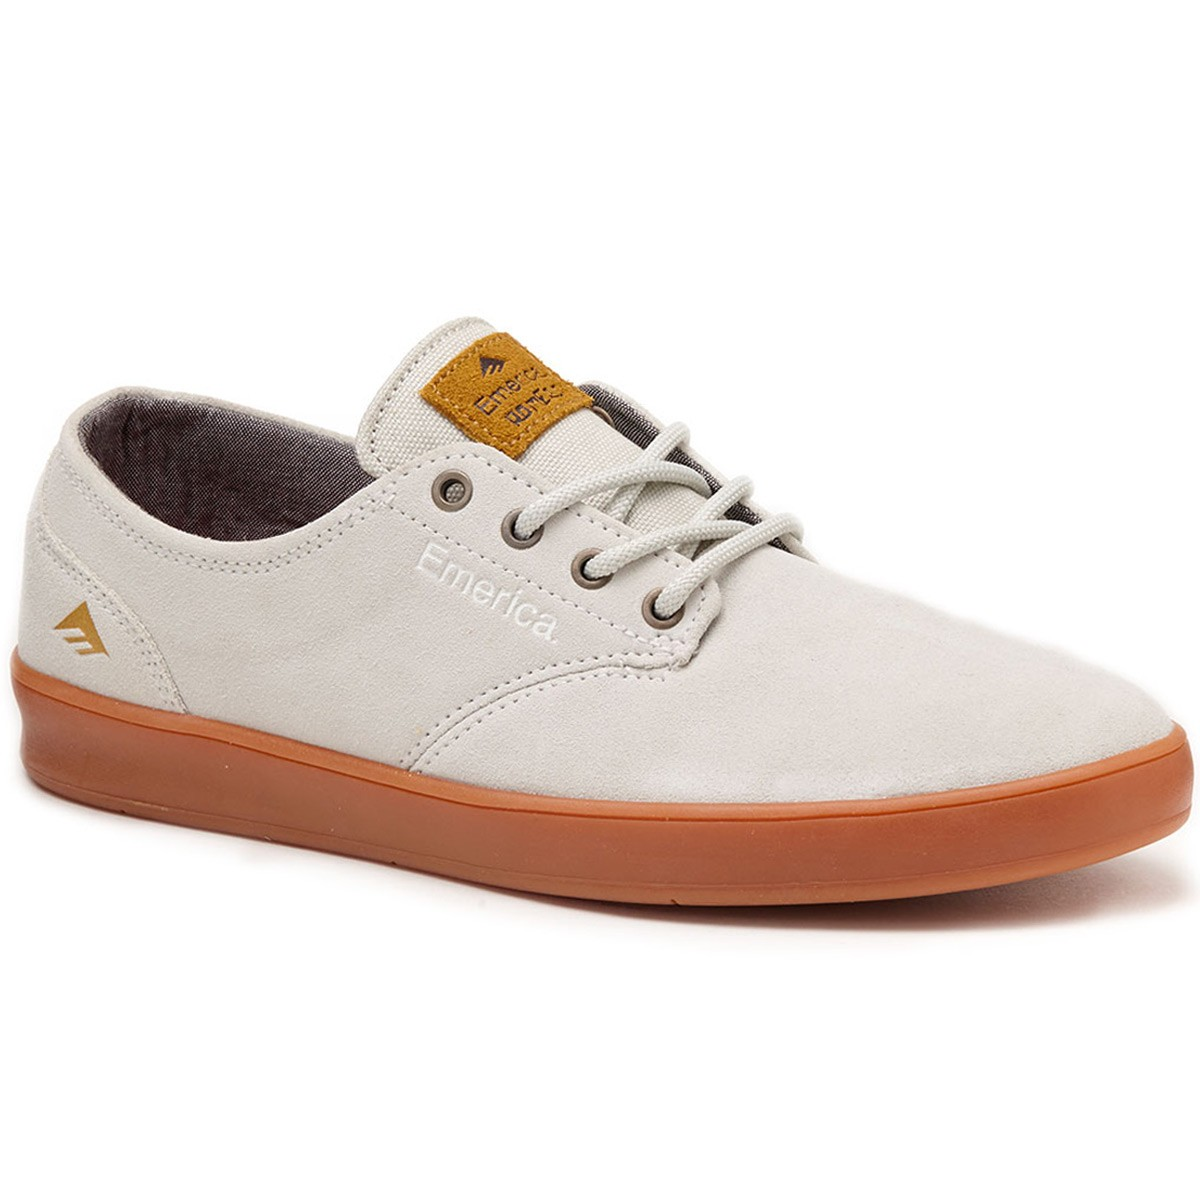 Emerica The Romero Laced Shoes - White/Gum - 8.0